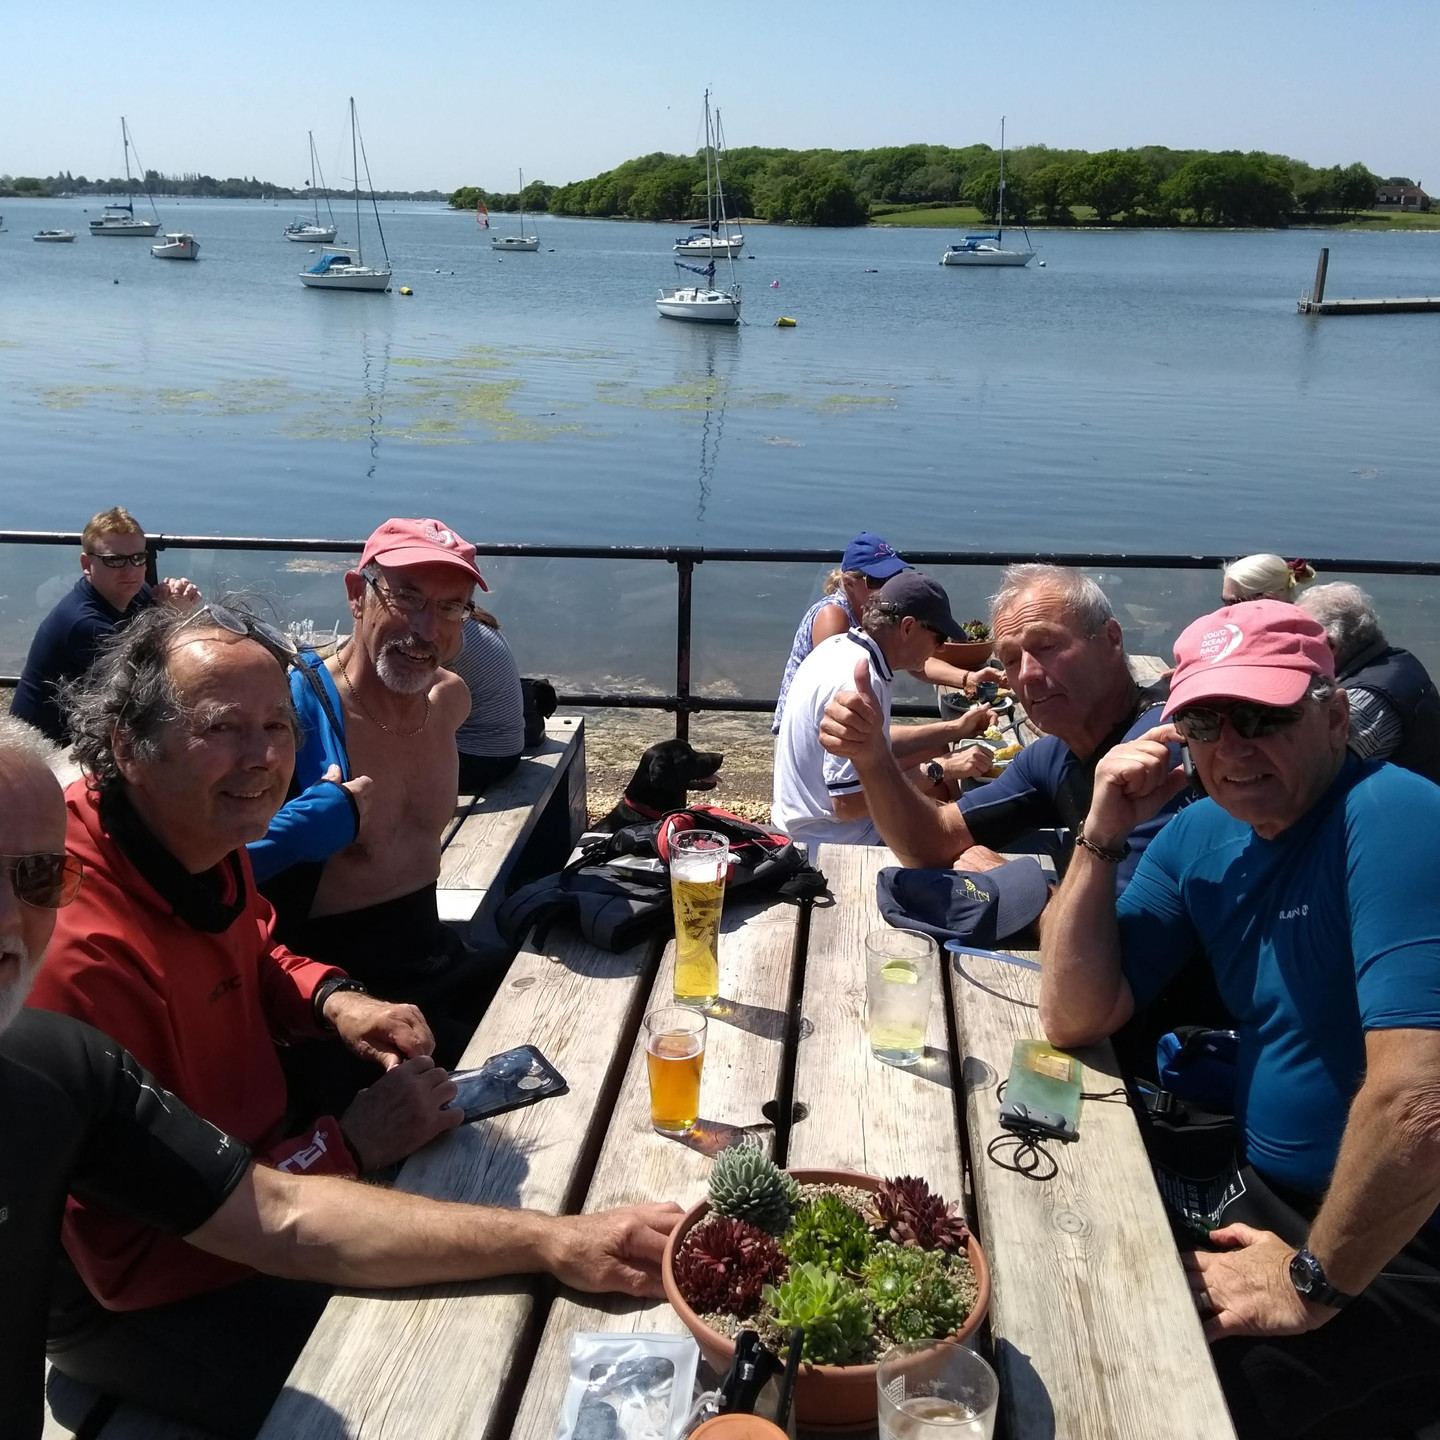 Lunch at Dell quay